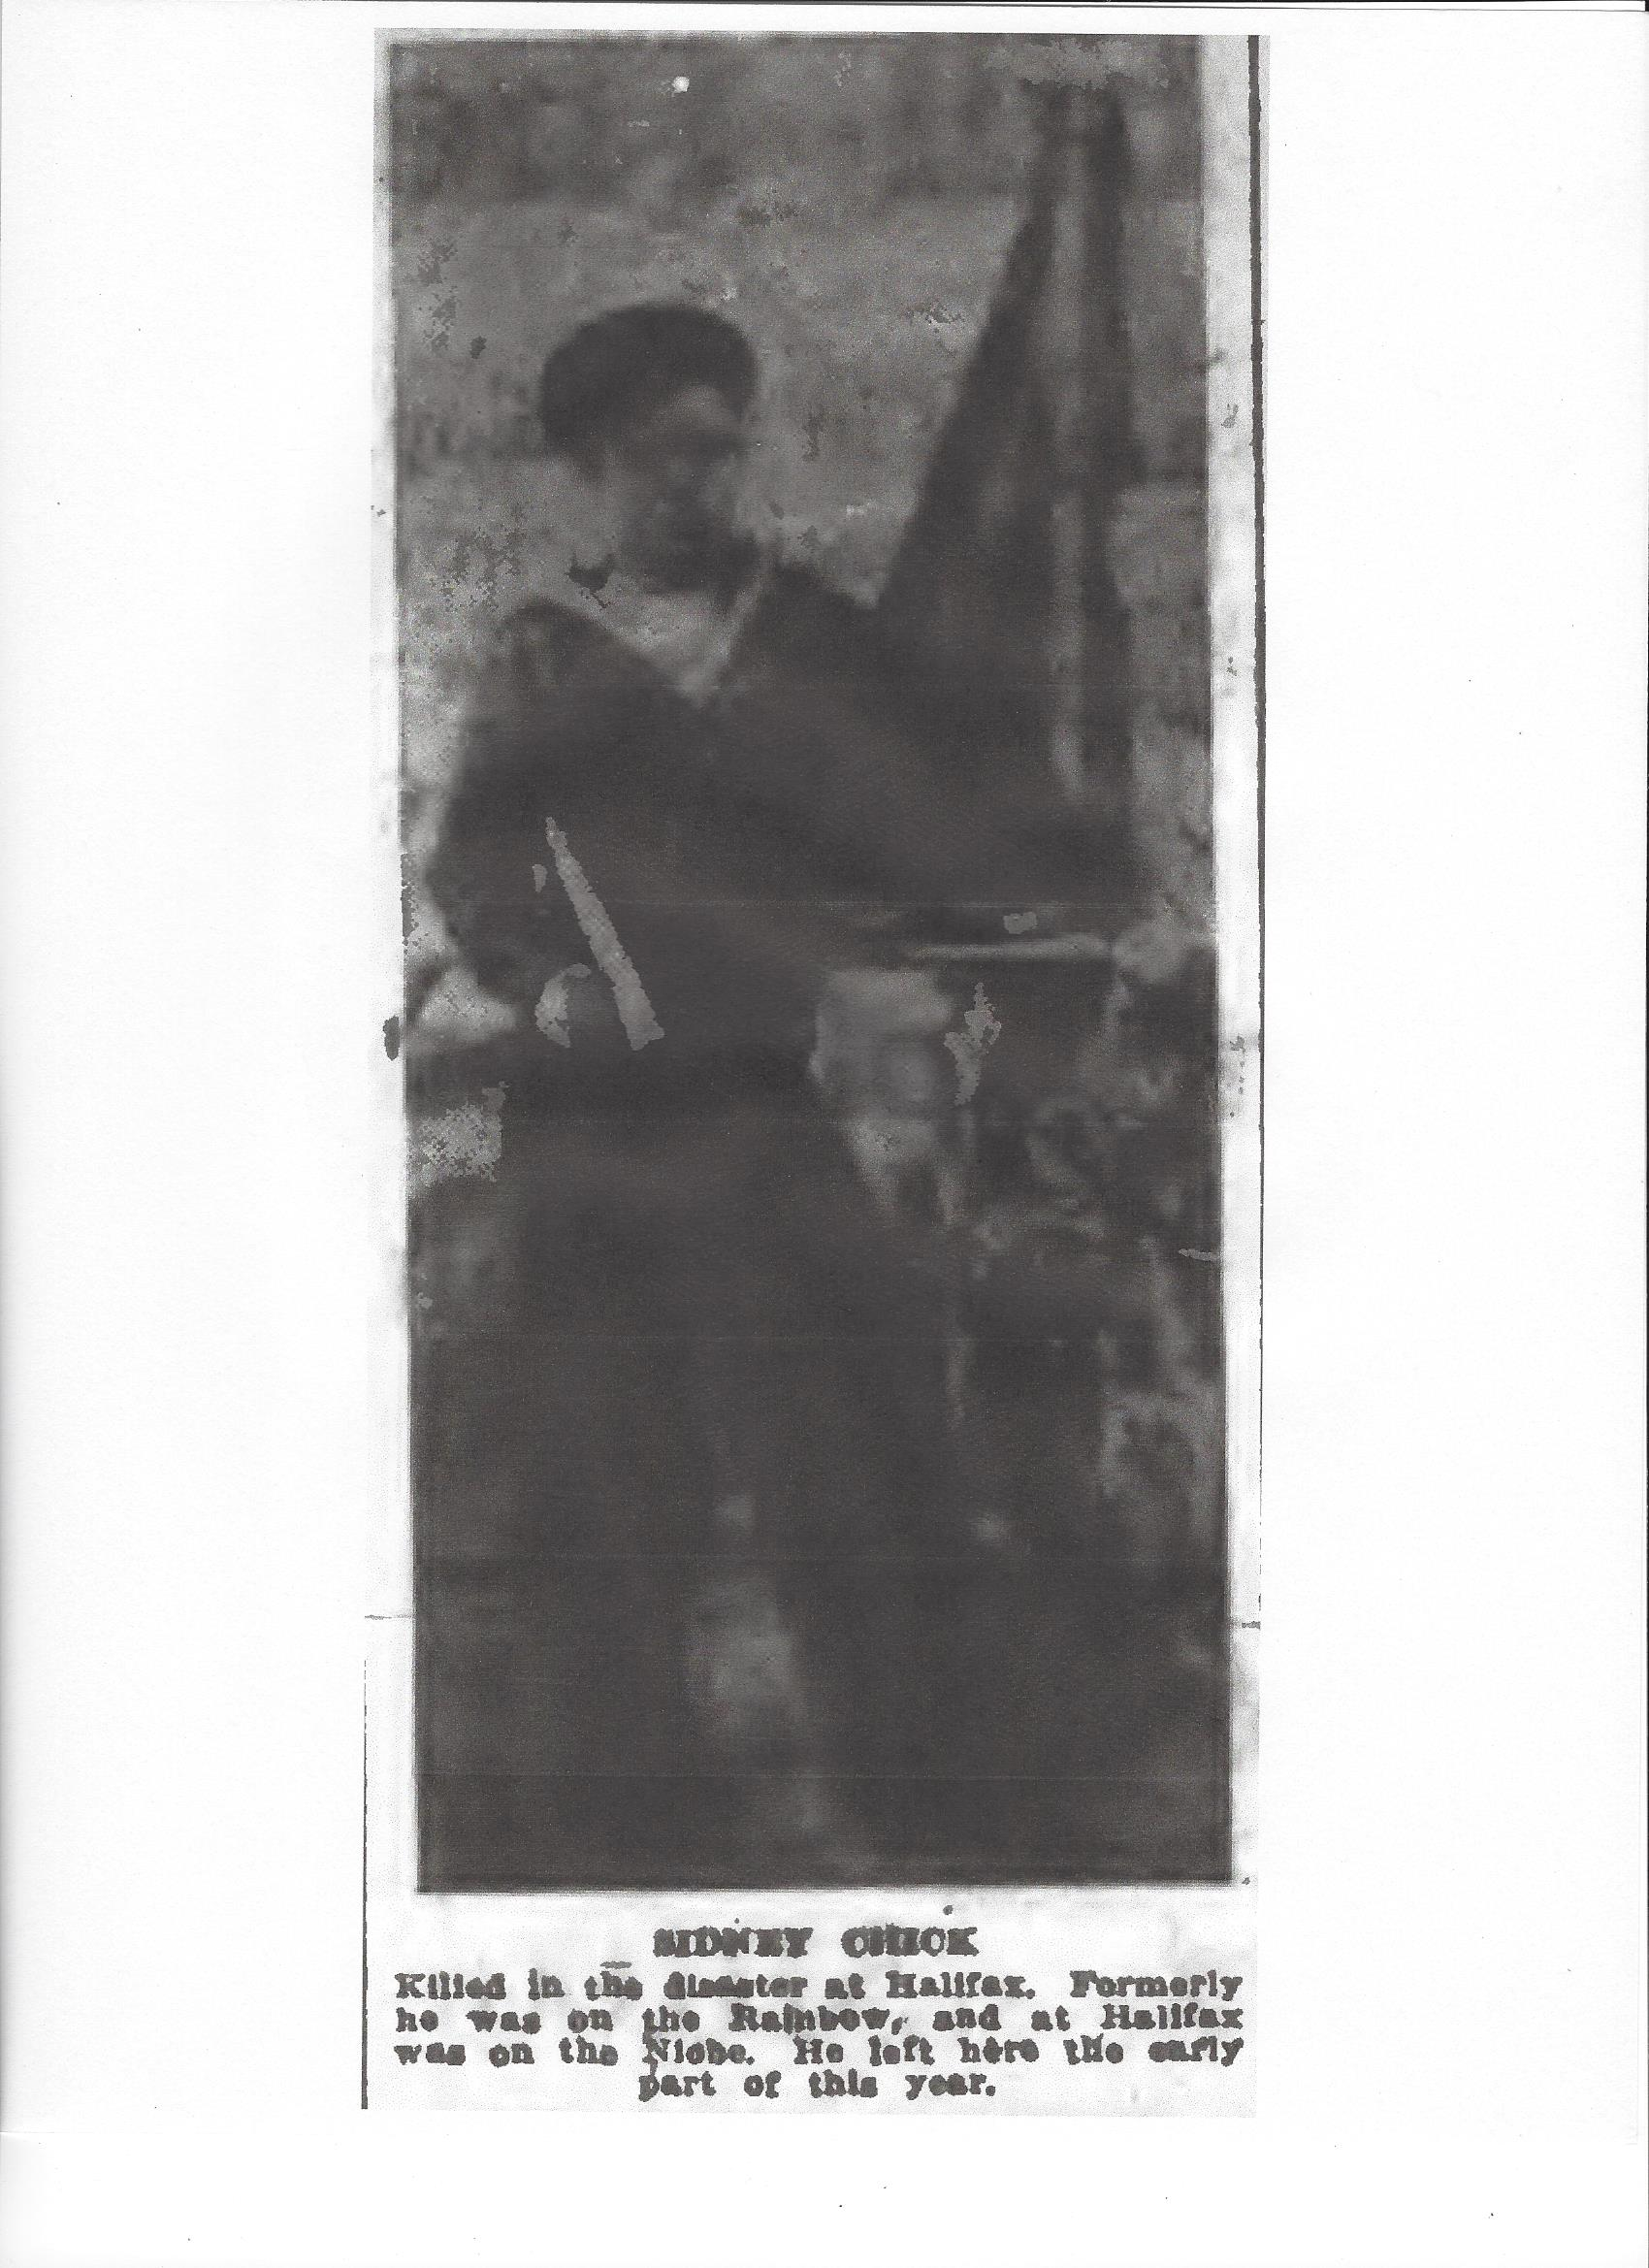 Photo of SIDNEY CHICK– Photograph from the Daily Colonist of December 16, 1917. Image taken from web address of http://archive.org/stream/dailycolonist59by320uvic#page/n0/mode/1up